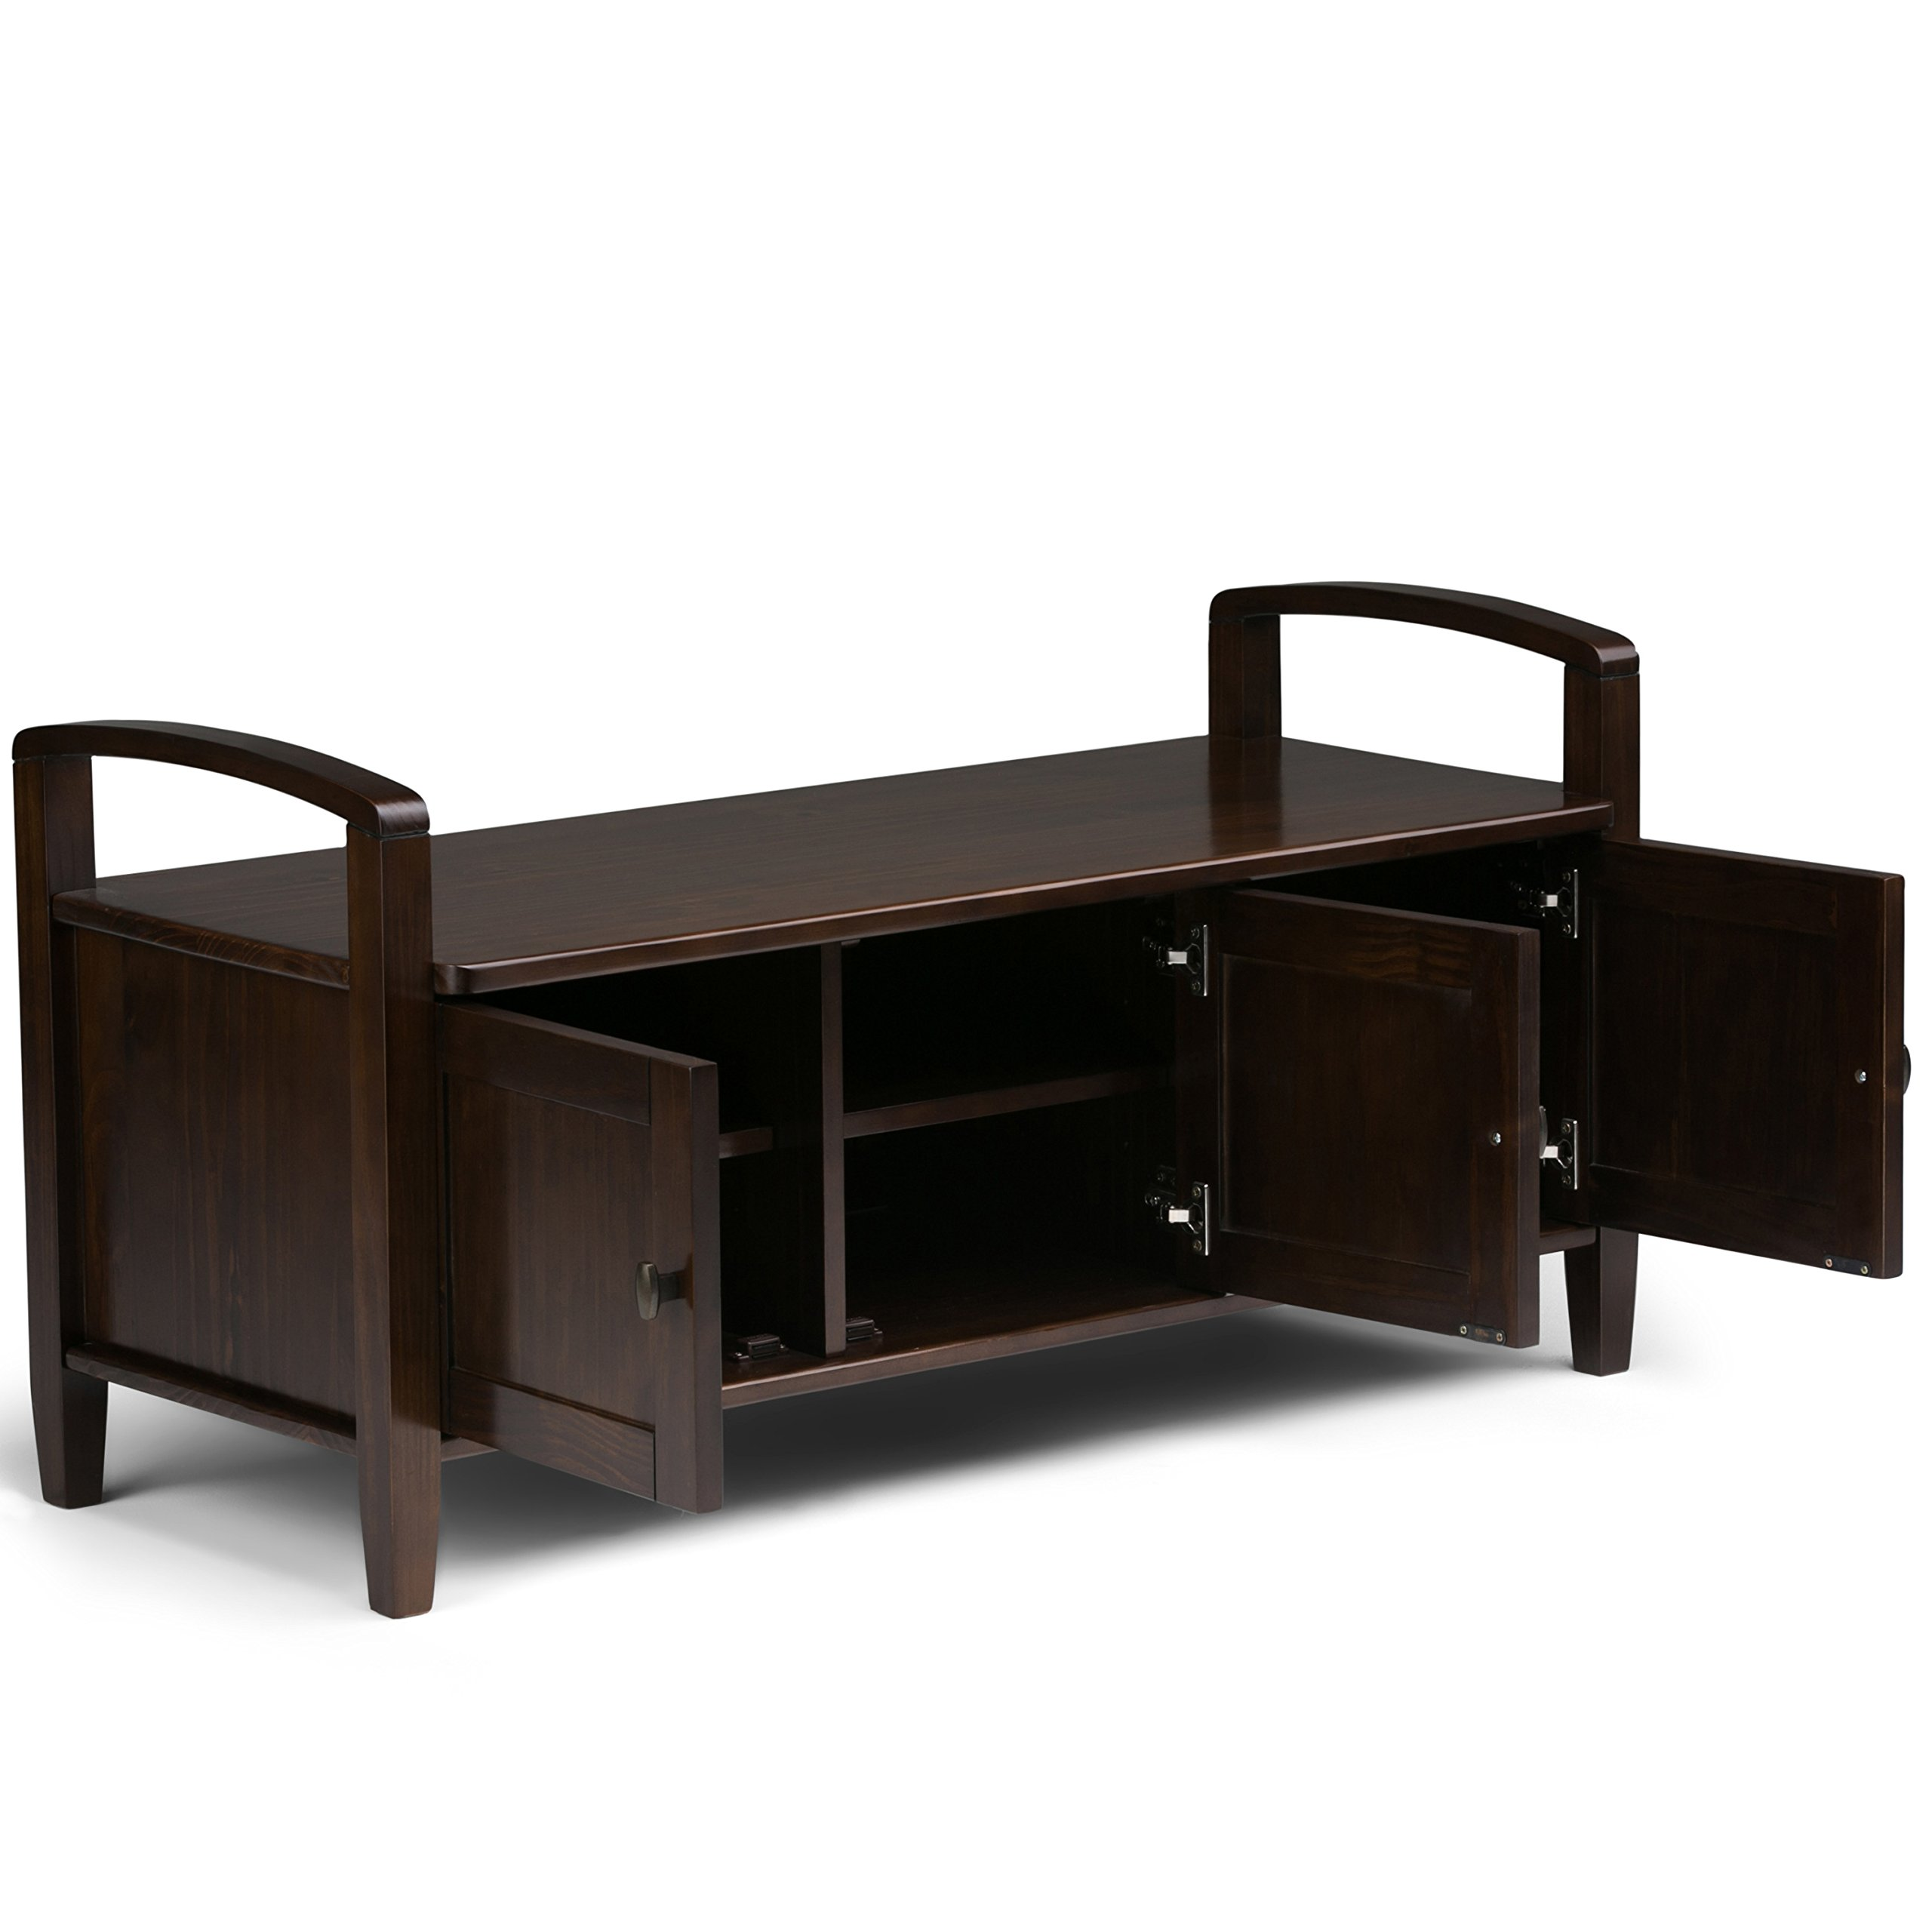 Simpli Home Warm Shaker Solid Wood Entryway Storage Bench, Tobacco Brown by Simpli Home (Image #3)